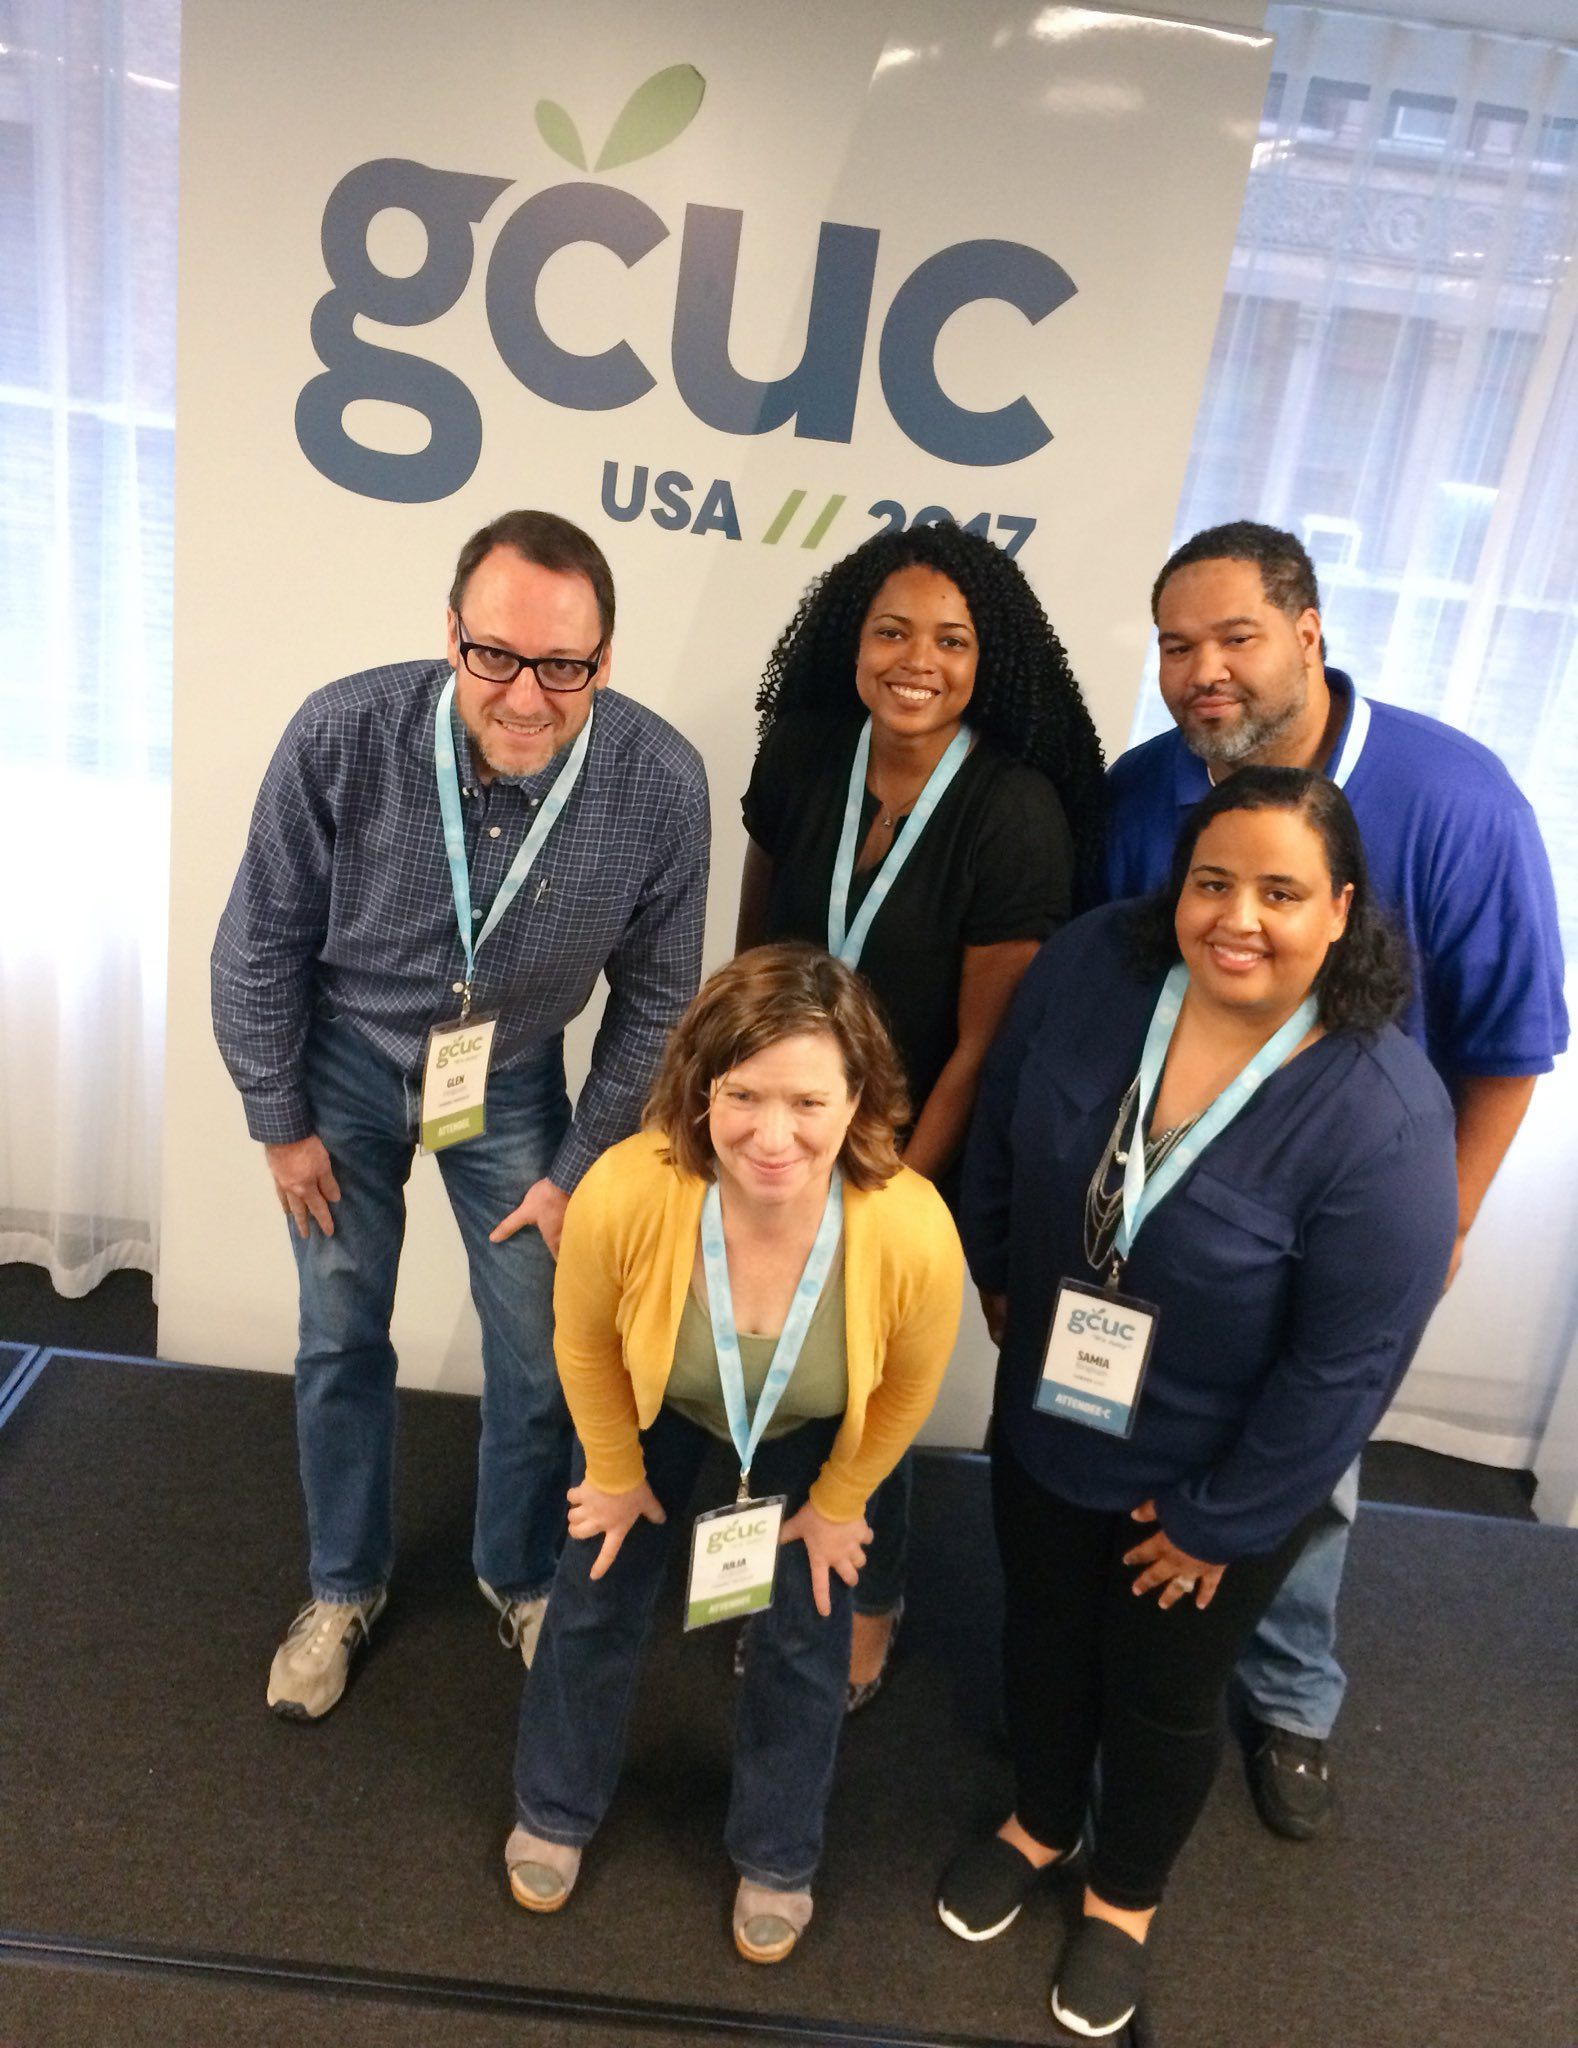 Great time connecting & collaborating with fellow #Maryland based #coworking communities at @GCUCUSA! #GCUC #MDbiz https://t.co/rKQoYltR0O